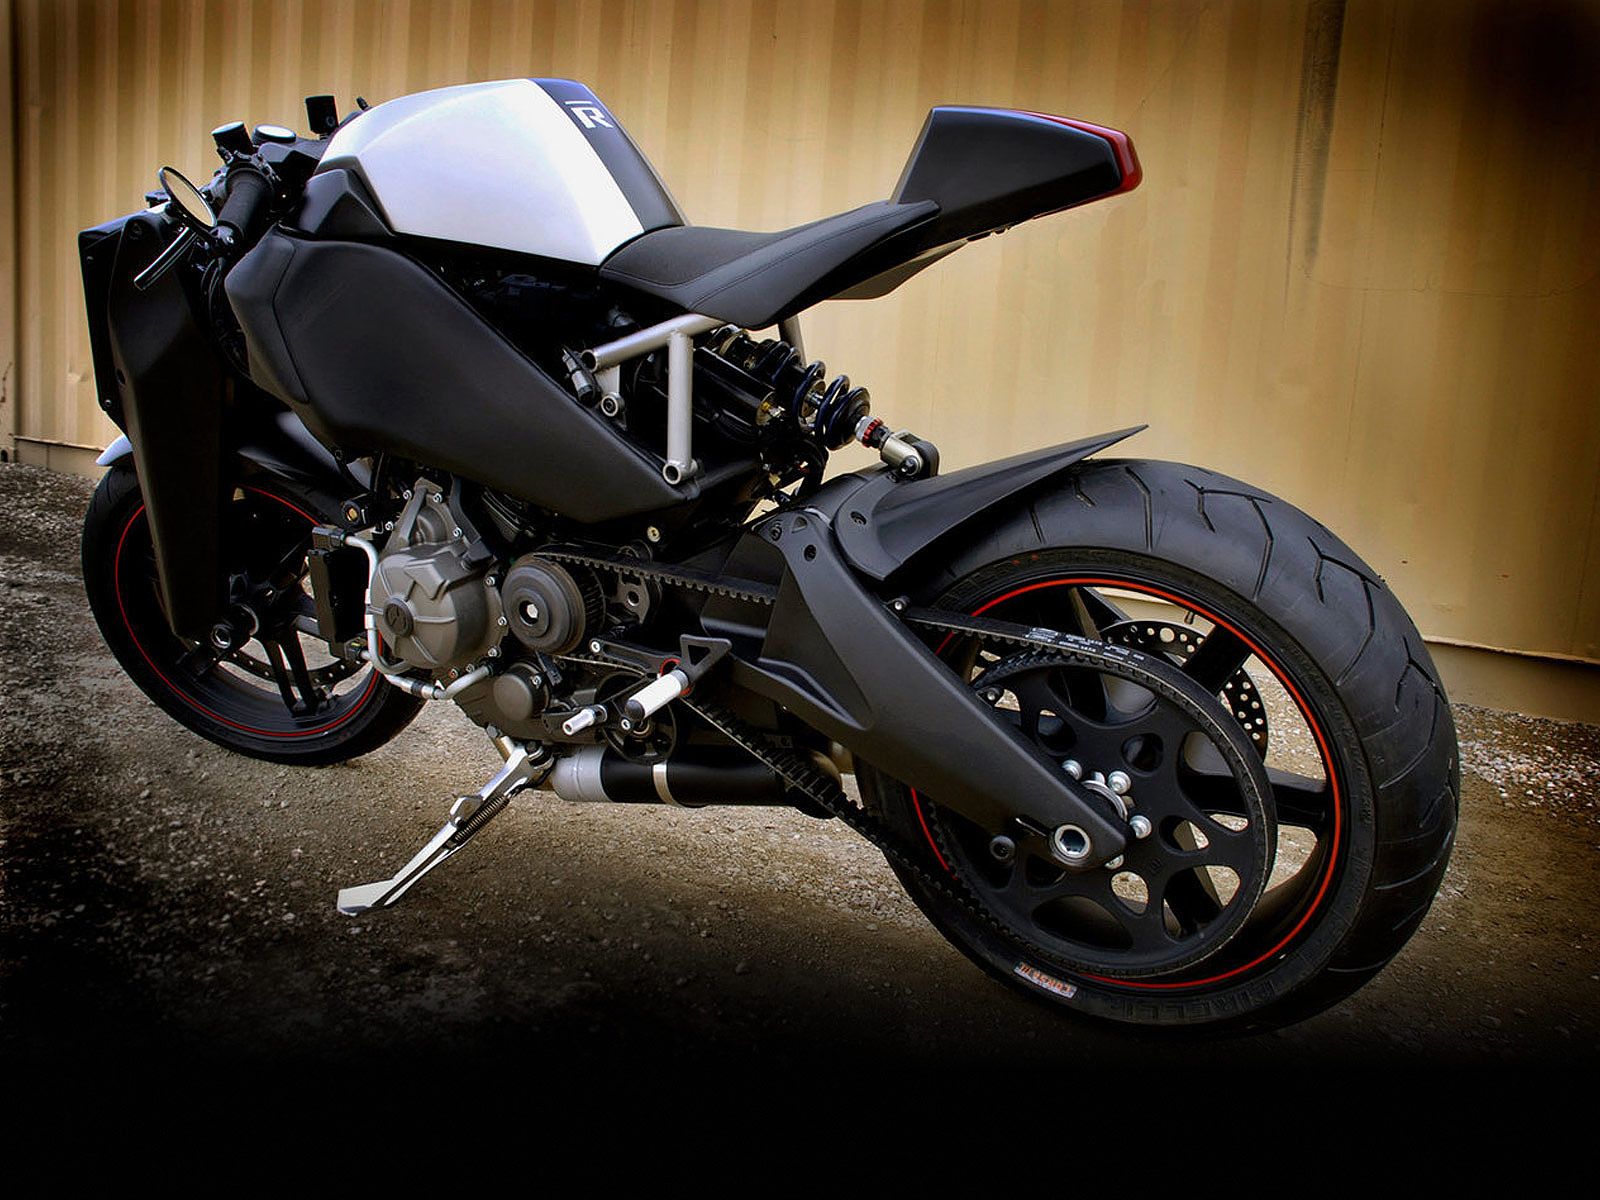 2010 buell 1125r picture design and specification